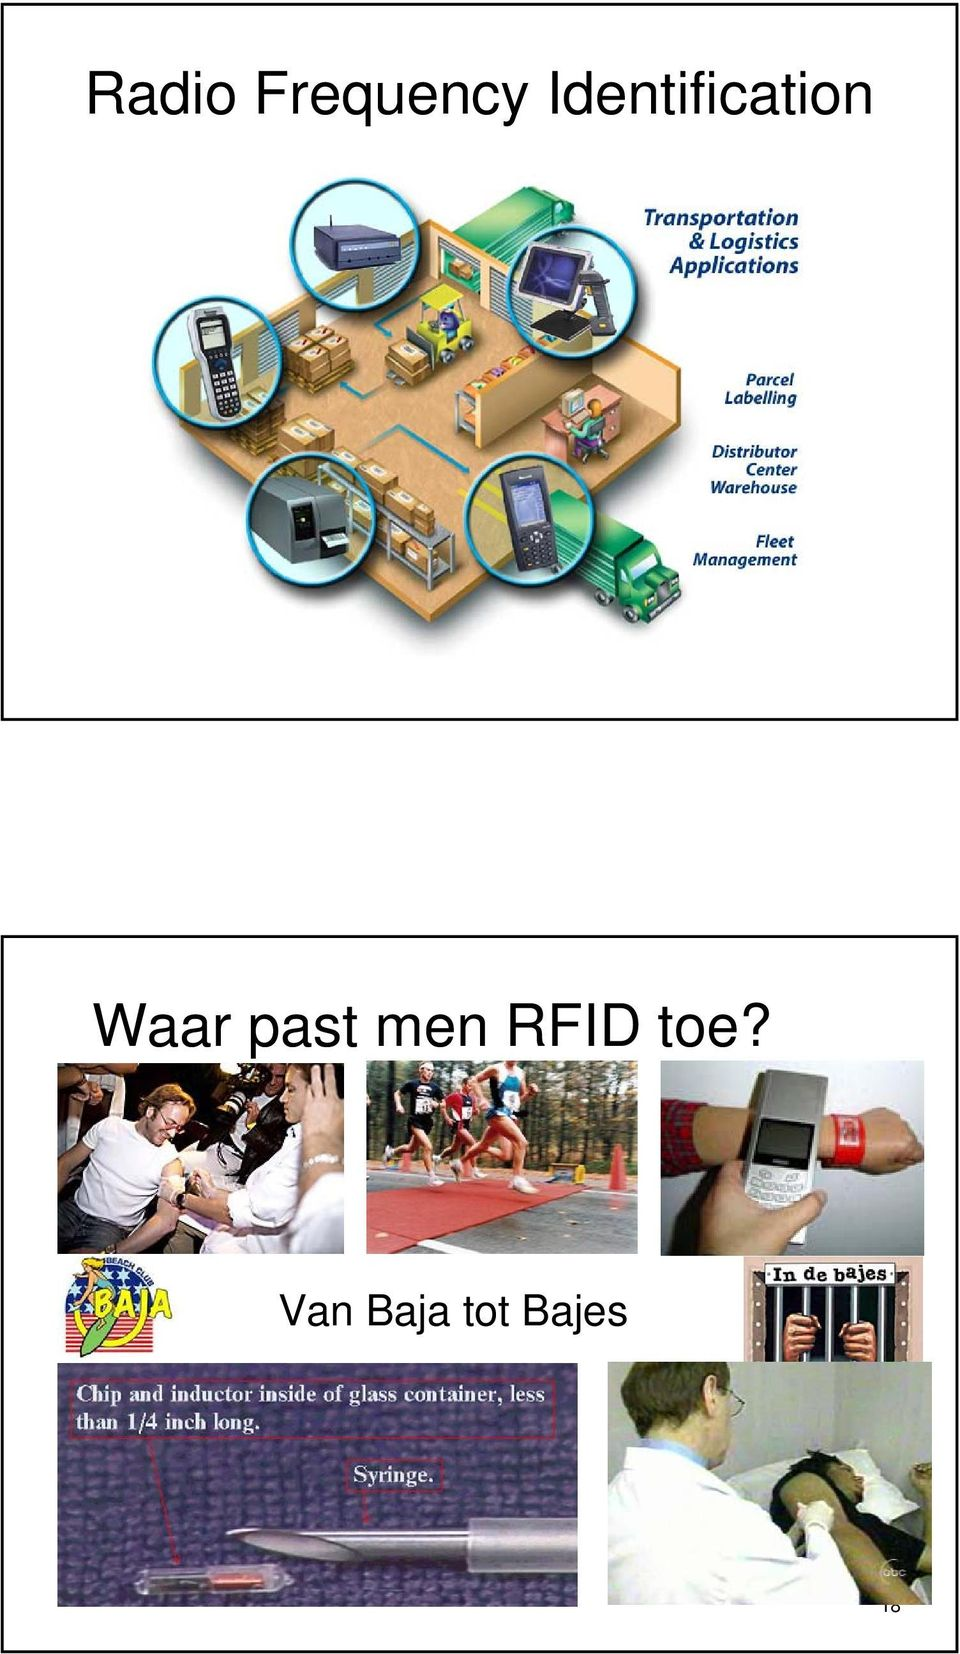 Waar past men RFID